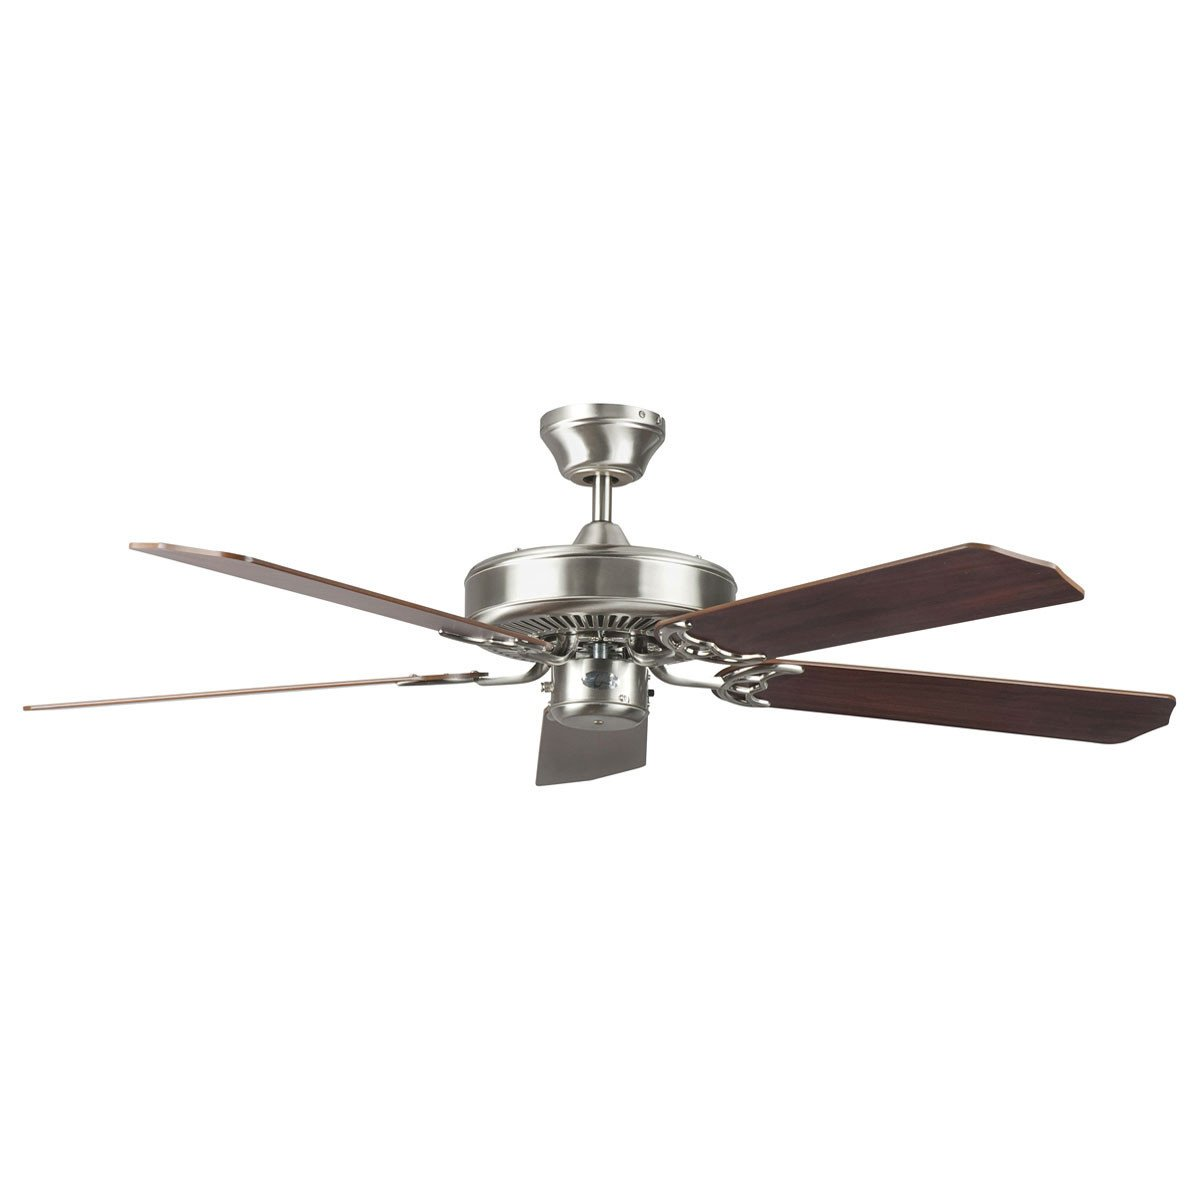 "Concord Fans 52"" Heritage Stainless Steel Finish Simple Attractive Ceiling Fan"